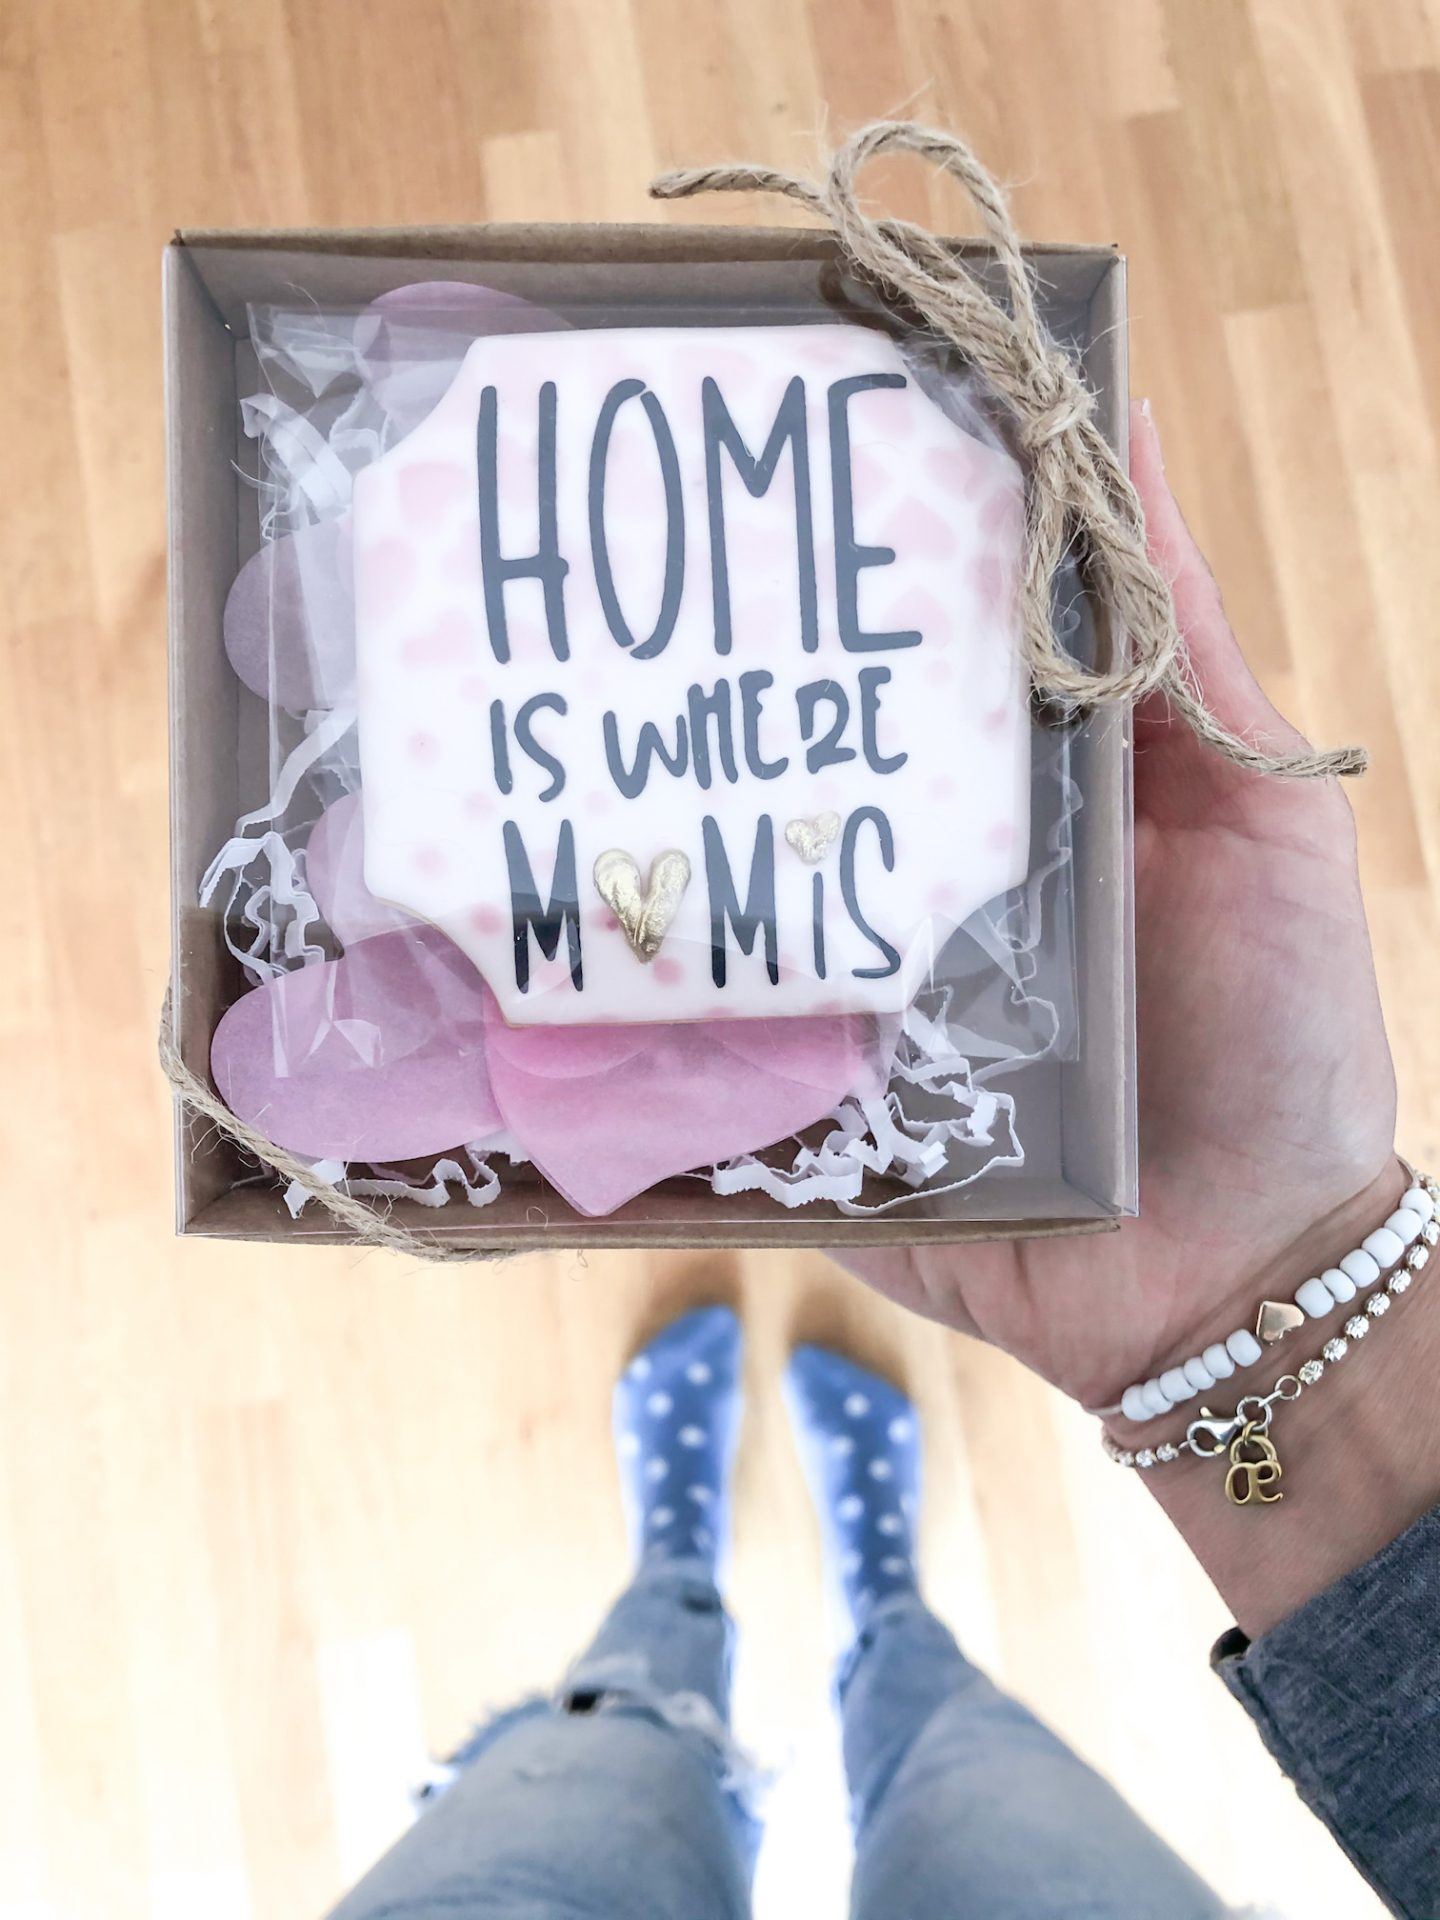 Individueller Keks zum Muttertag mit Home is where Mom is